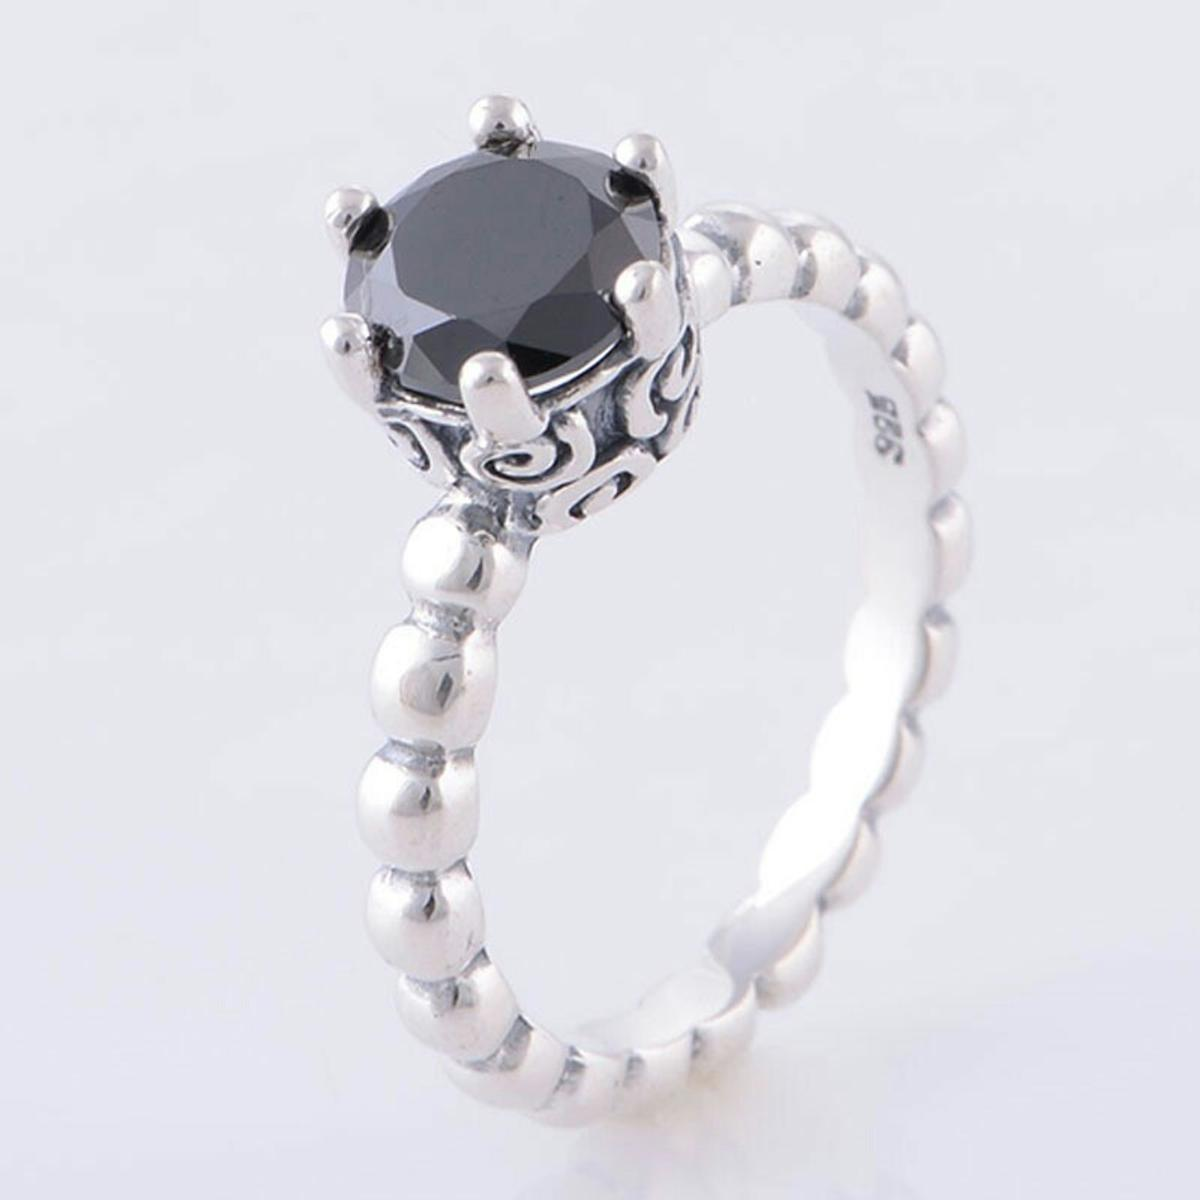 fb4a7072f PANDORA BLACK SPINEL BUBBLE RING SIZE 48 in M20 Manchester for ...